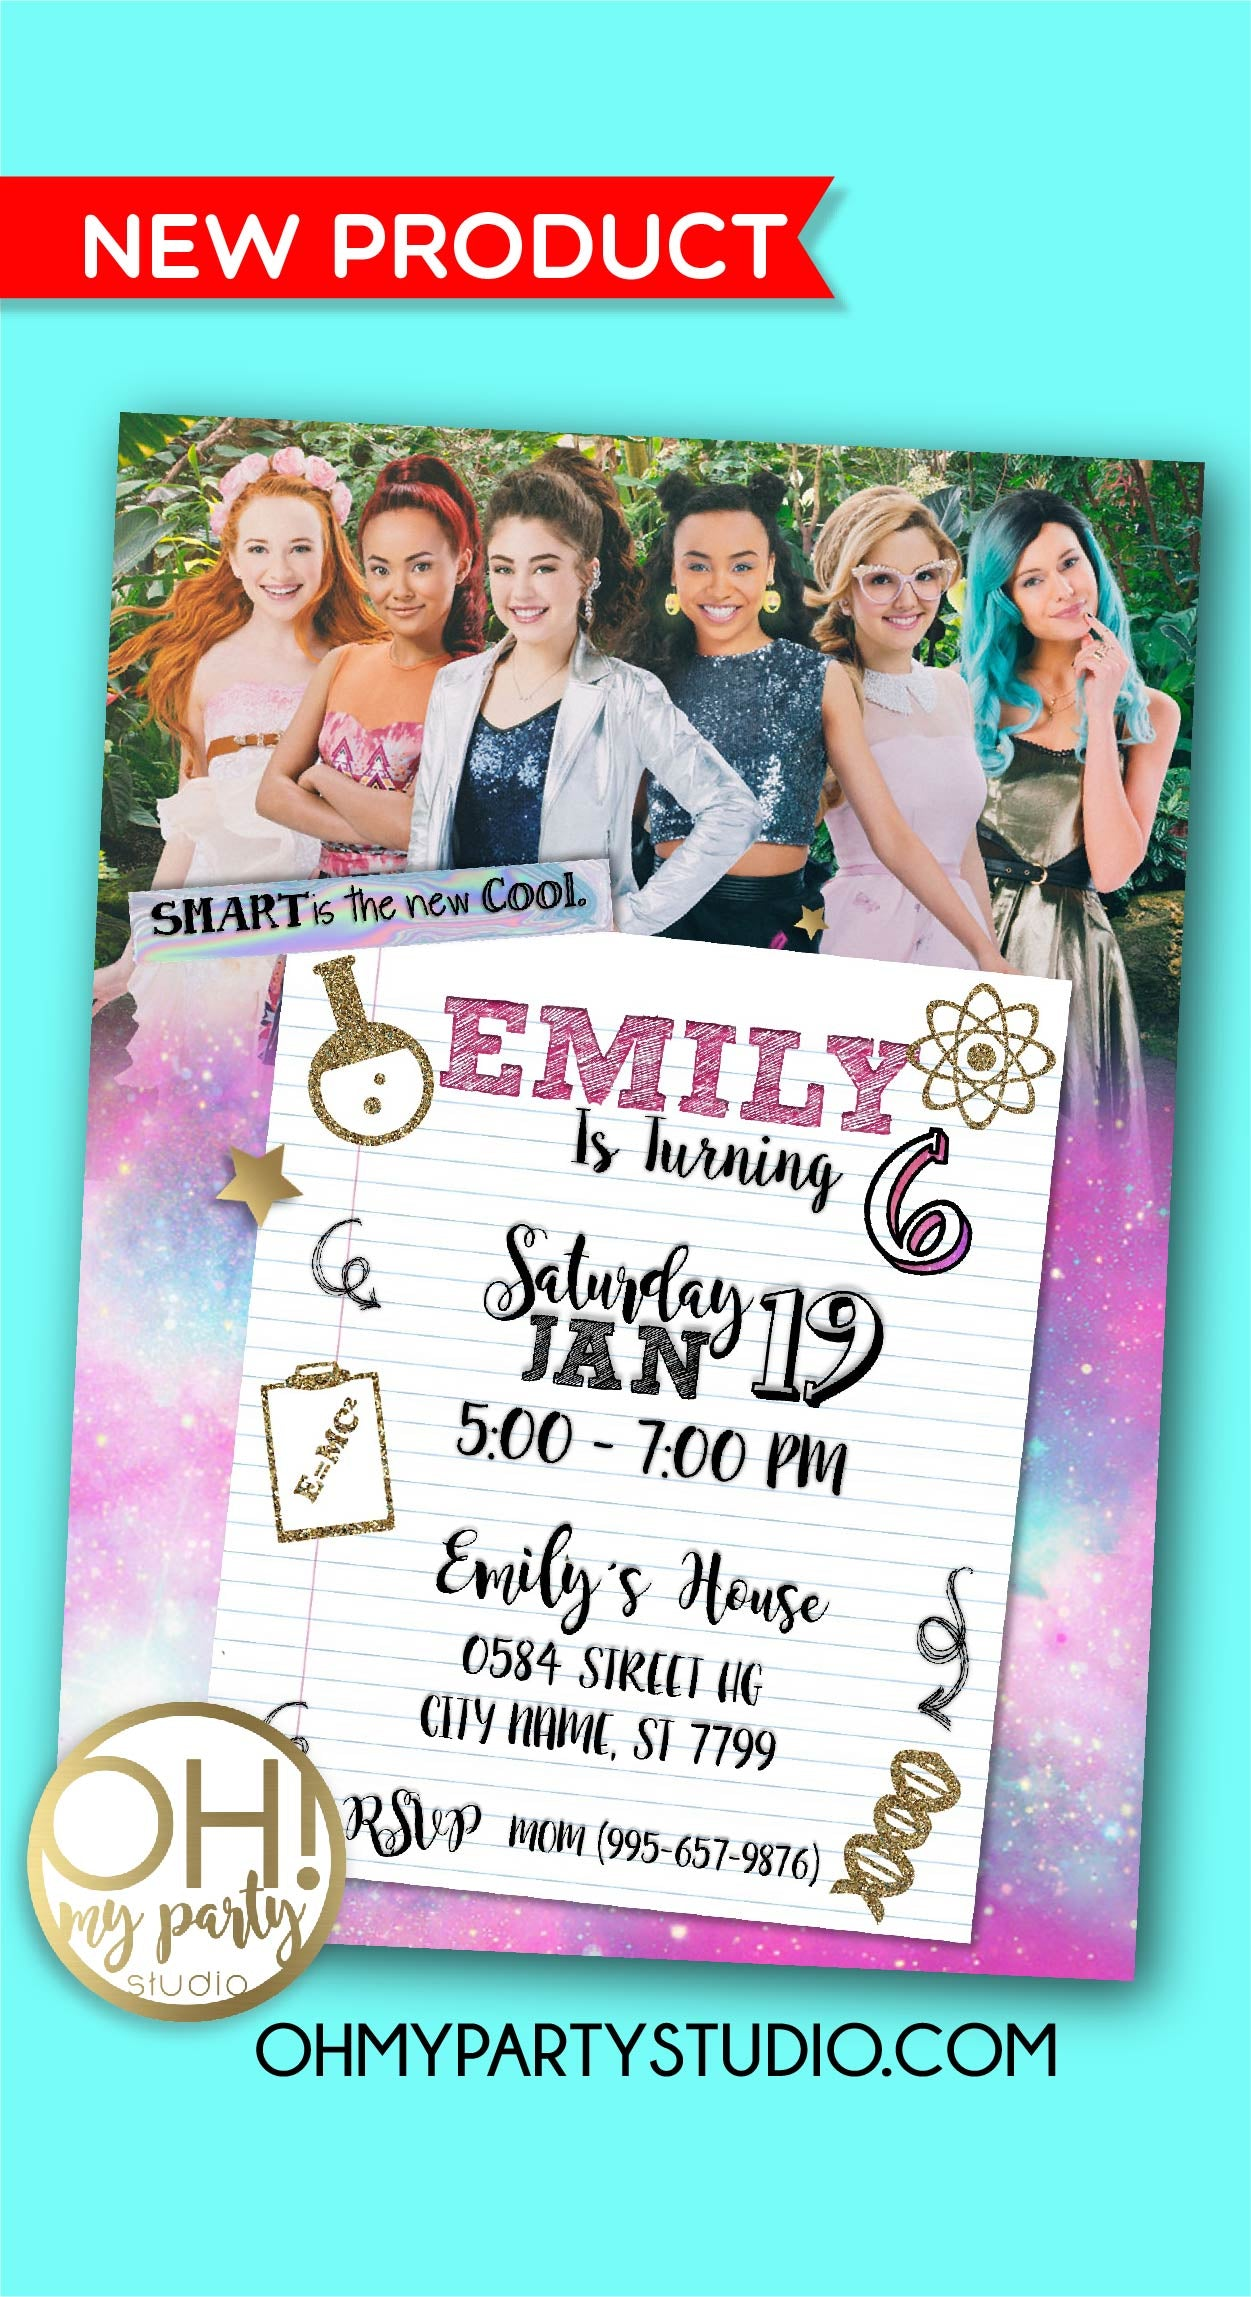 PROJECT MC2 BIRTHDAY INVITATION, PROJECT MC2 PARTY, PROJECT MC2 BIRTHDAY, PROJECT MC2 BIRTHDAY PARTY, PROJECT MC2 INVITATION, PROJECT MC2 BIRTHDAY INVITATION, PROJECT MC2 DECORATIONS, PROJECT MC2 PARTY, PROJECT MC2 INVITATIONS